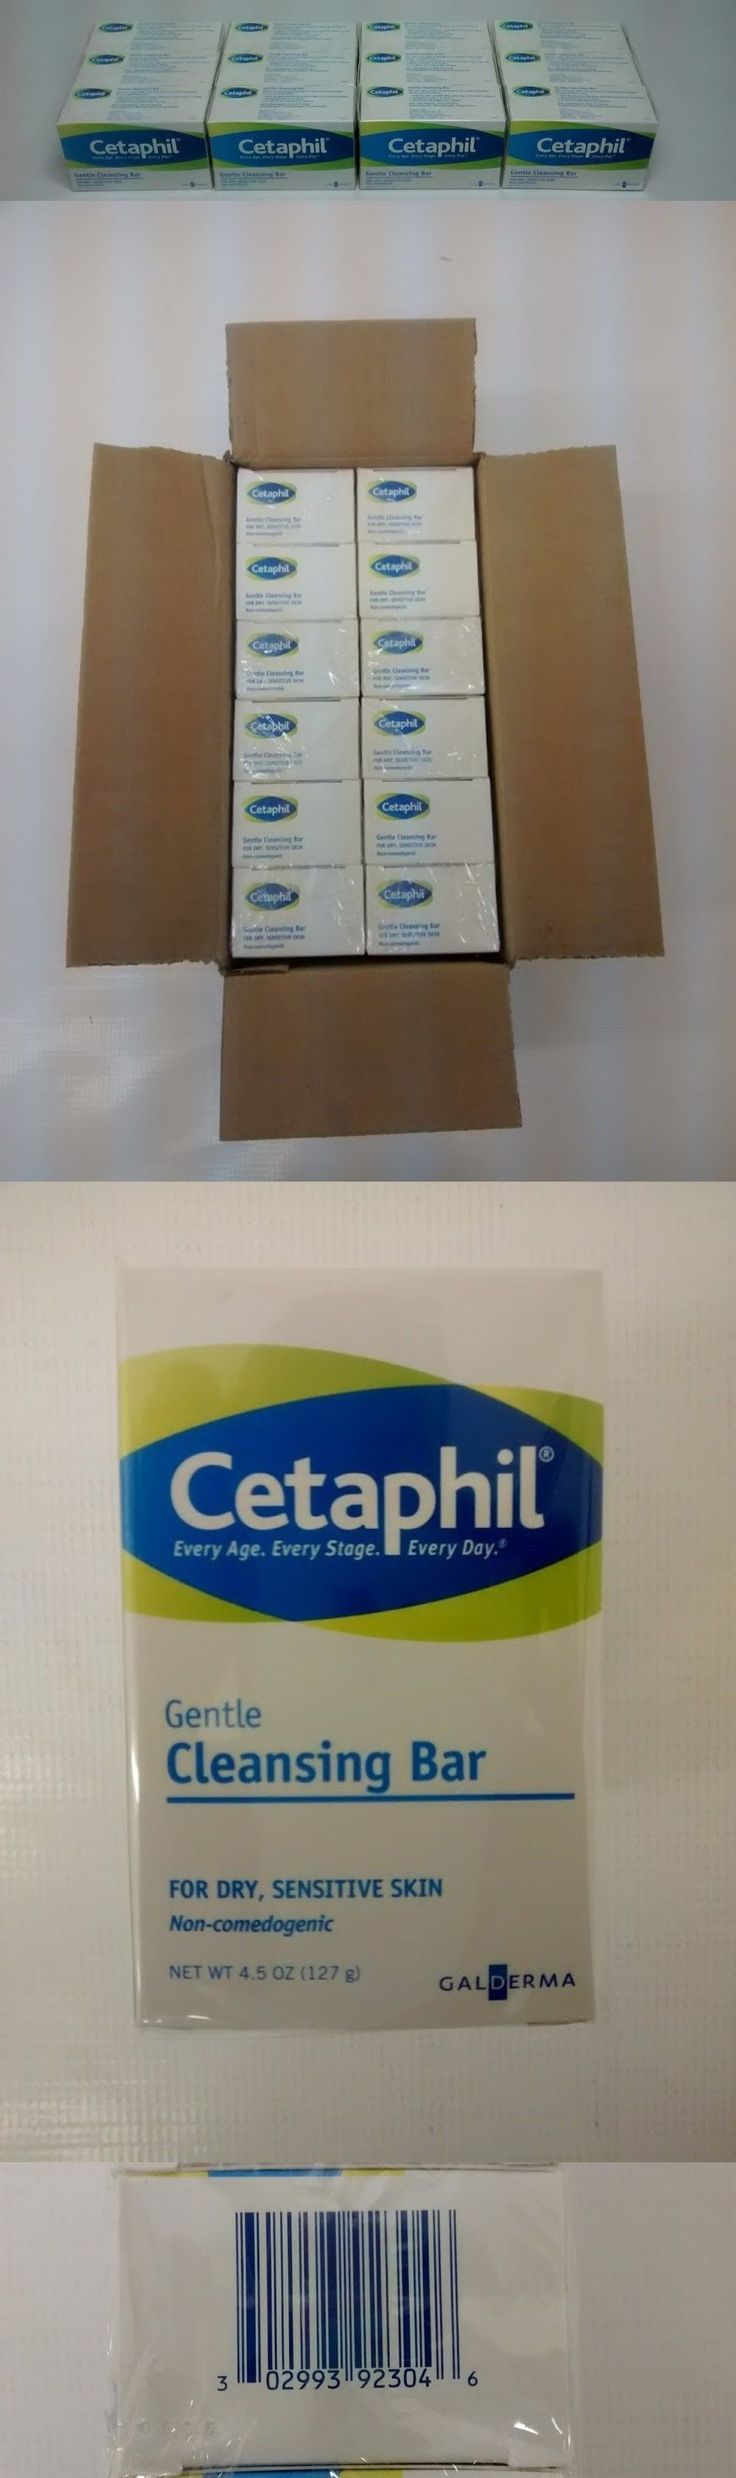 Bar Soaps: 12 Pack, Cetaphil Gentle Cleansing Soap Bar 4.5 Oz -> BUY IT NOW ONLY: $48.99 on eBay!